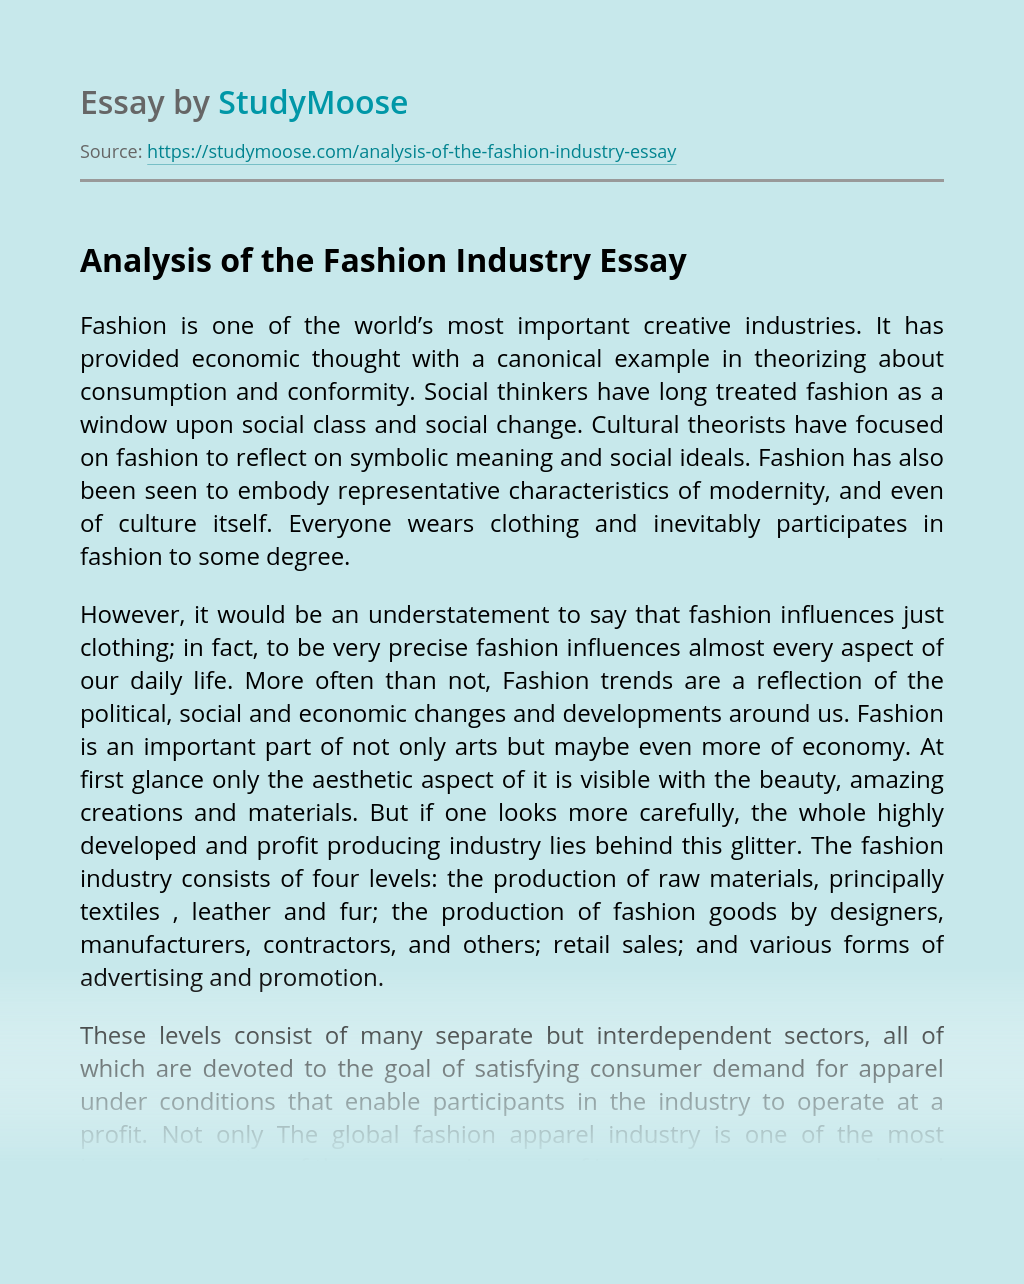 Analysis of the Fashion Industry